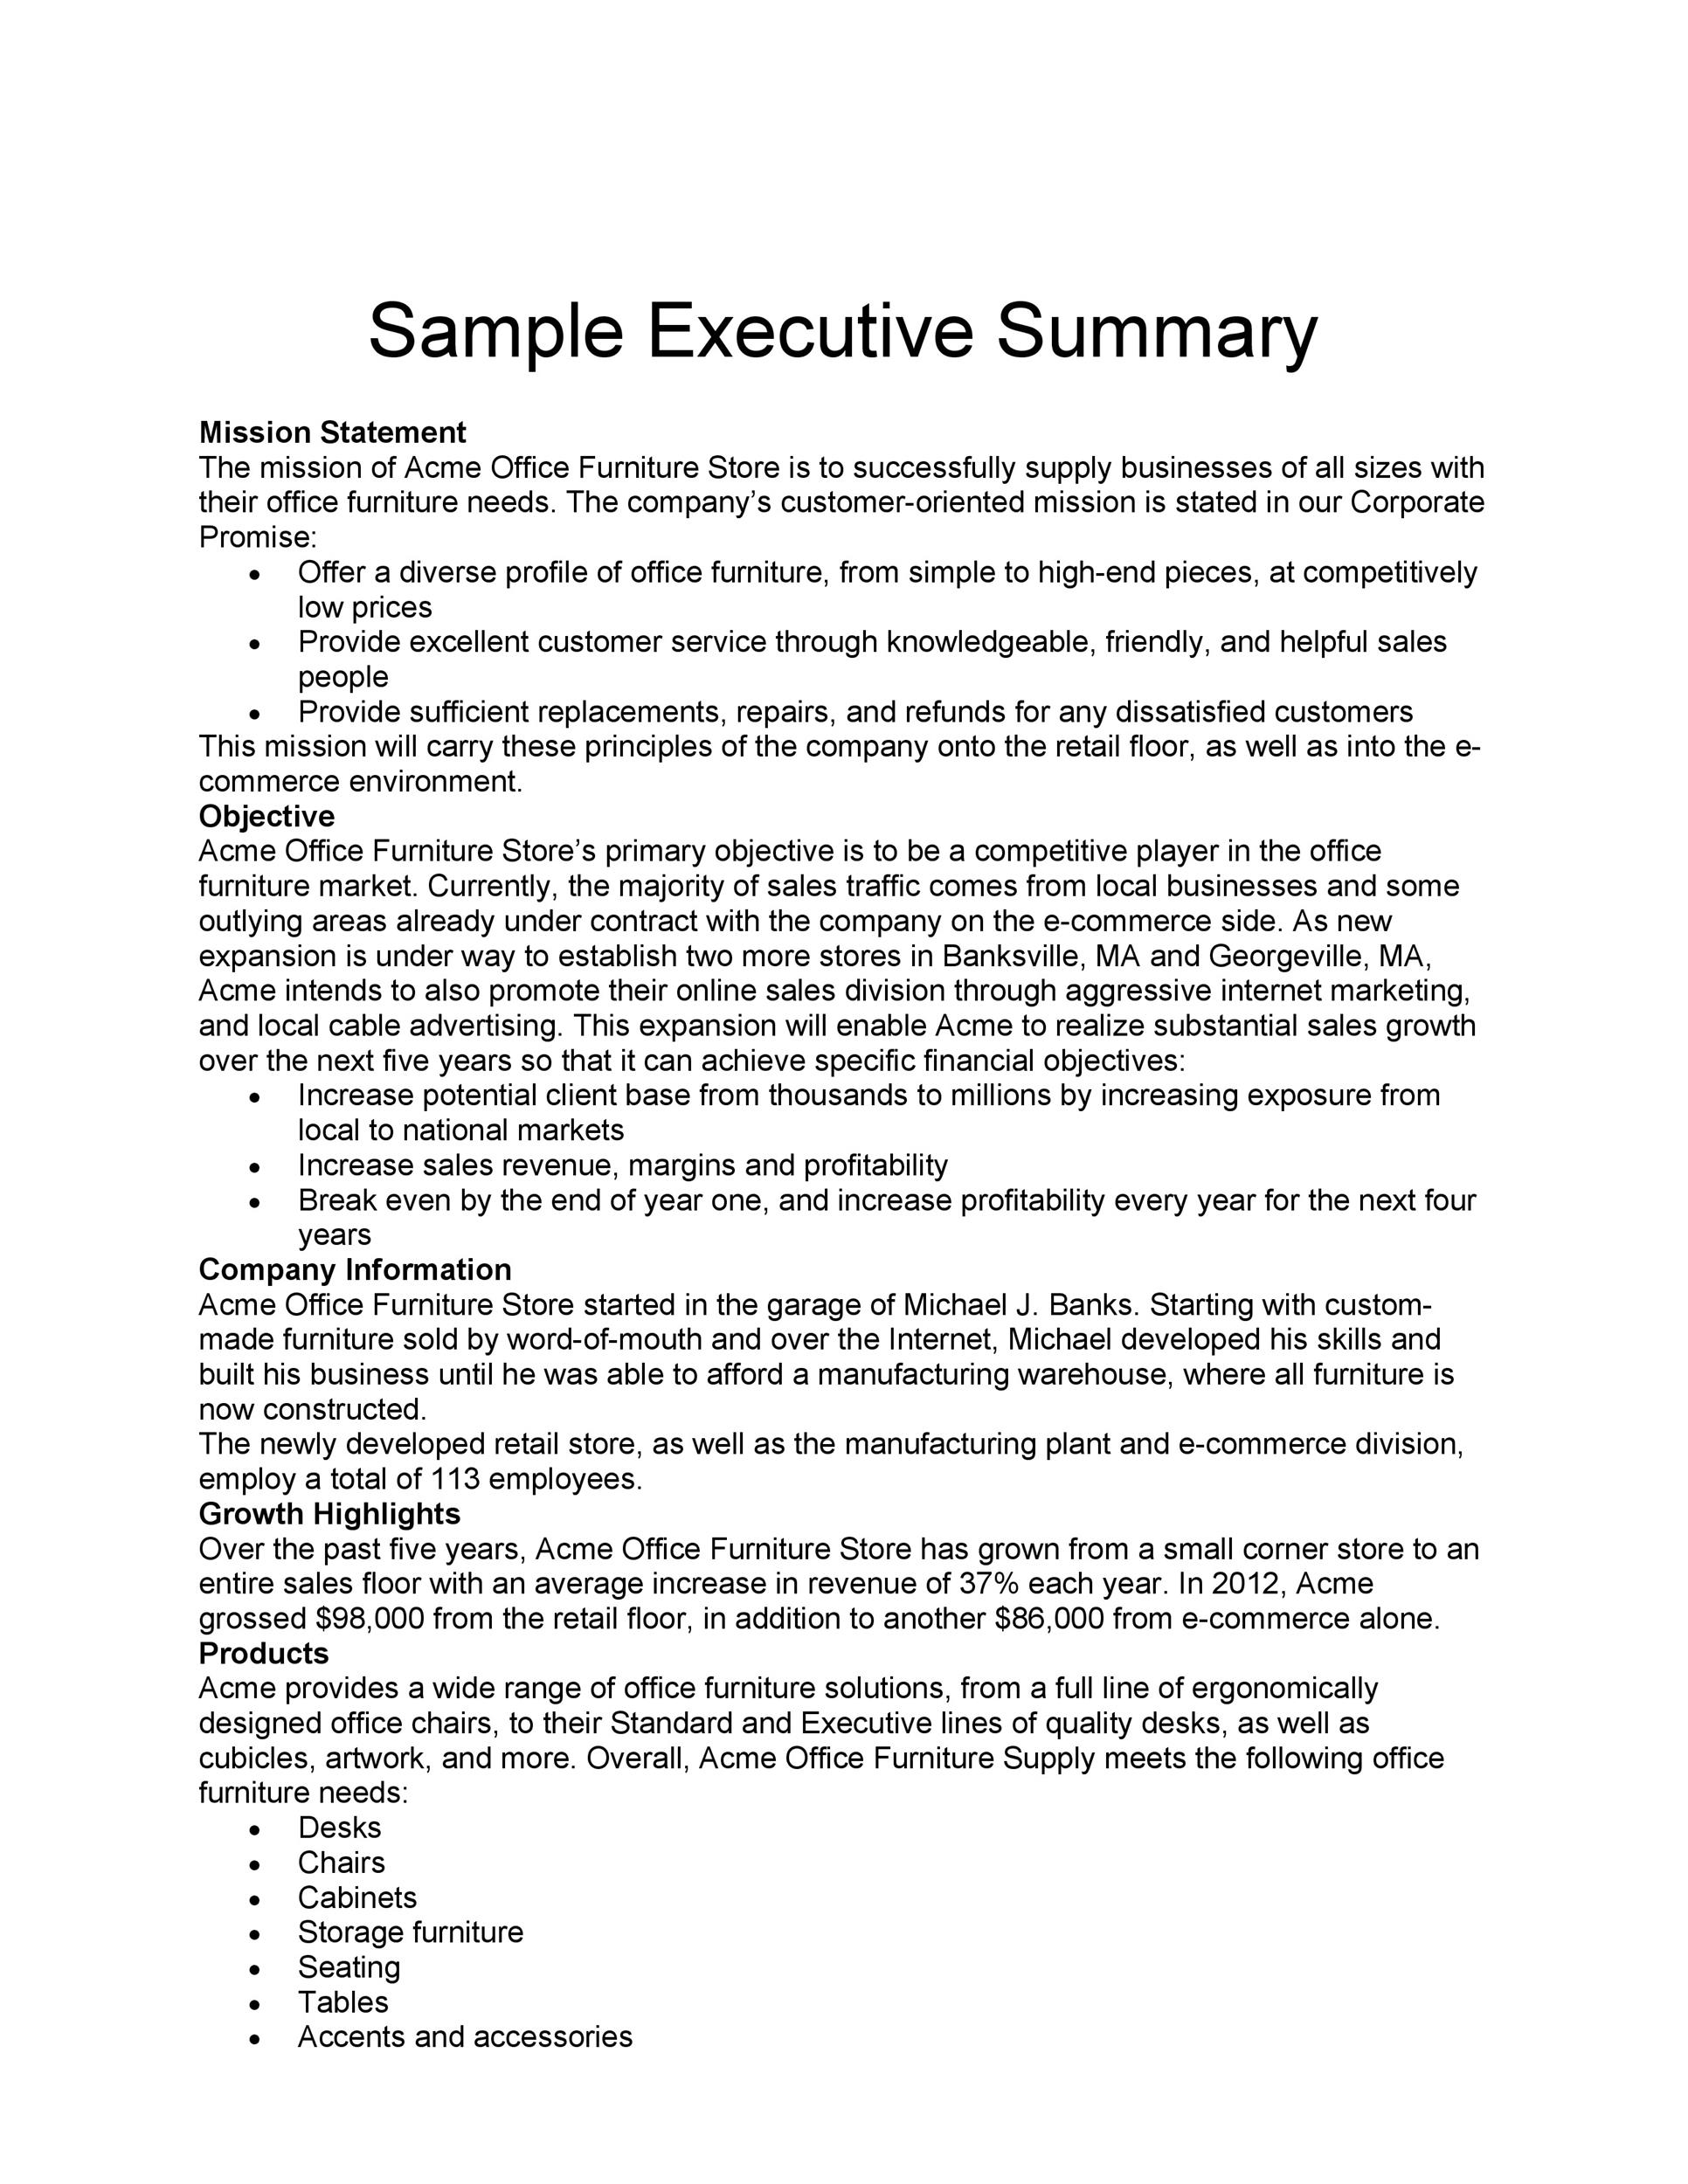 30+ Perfect Executive Summary Examples  Templates - Template Lab